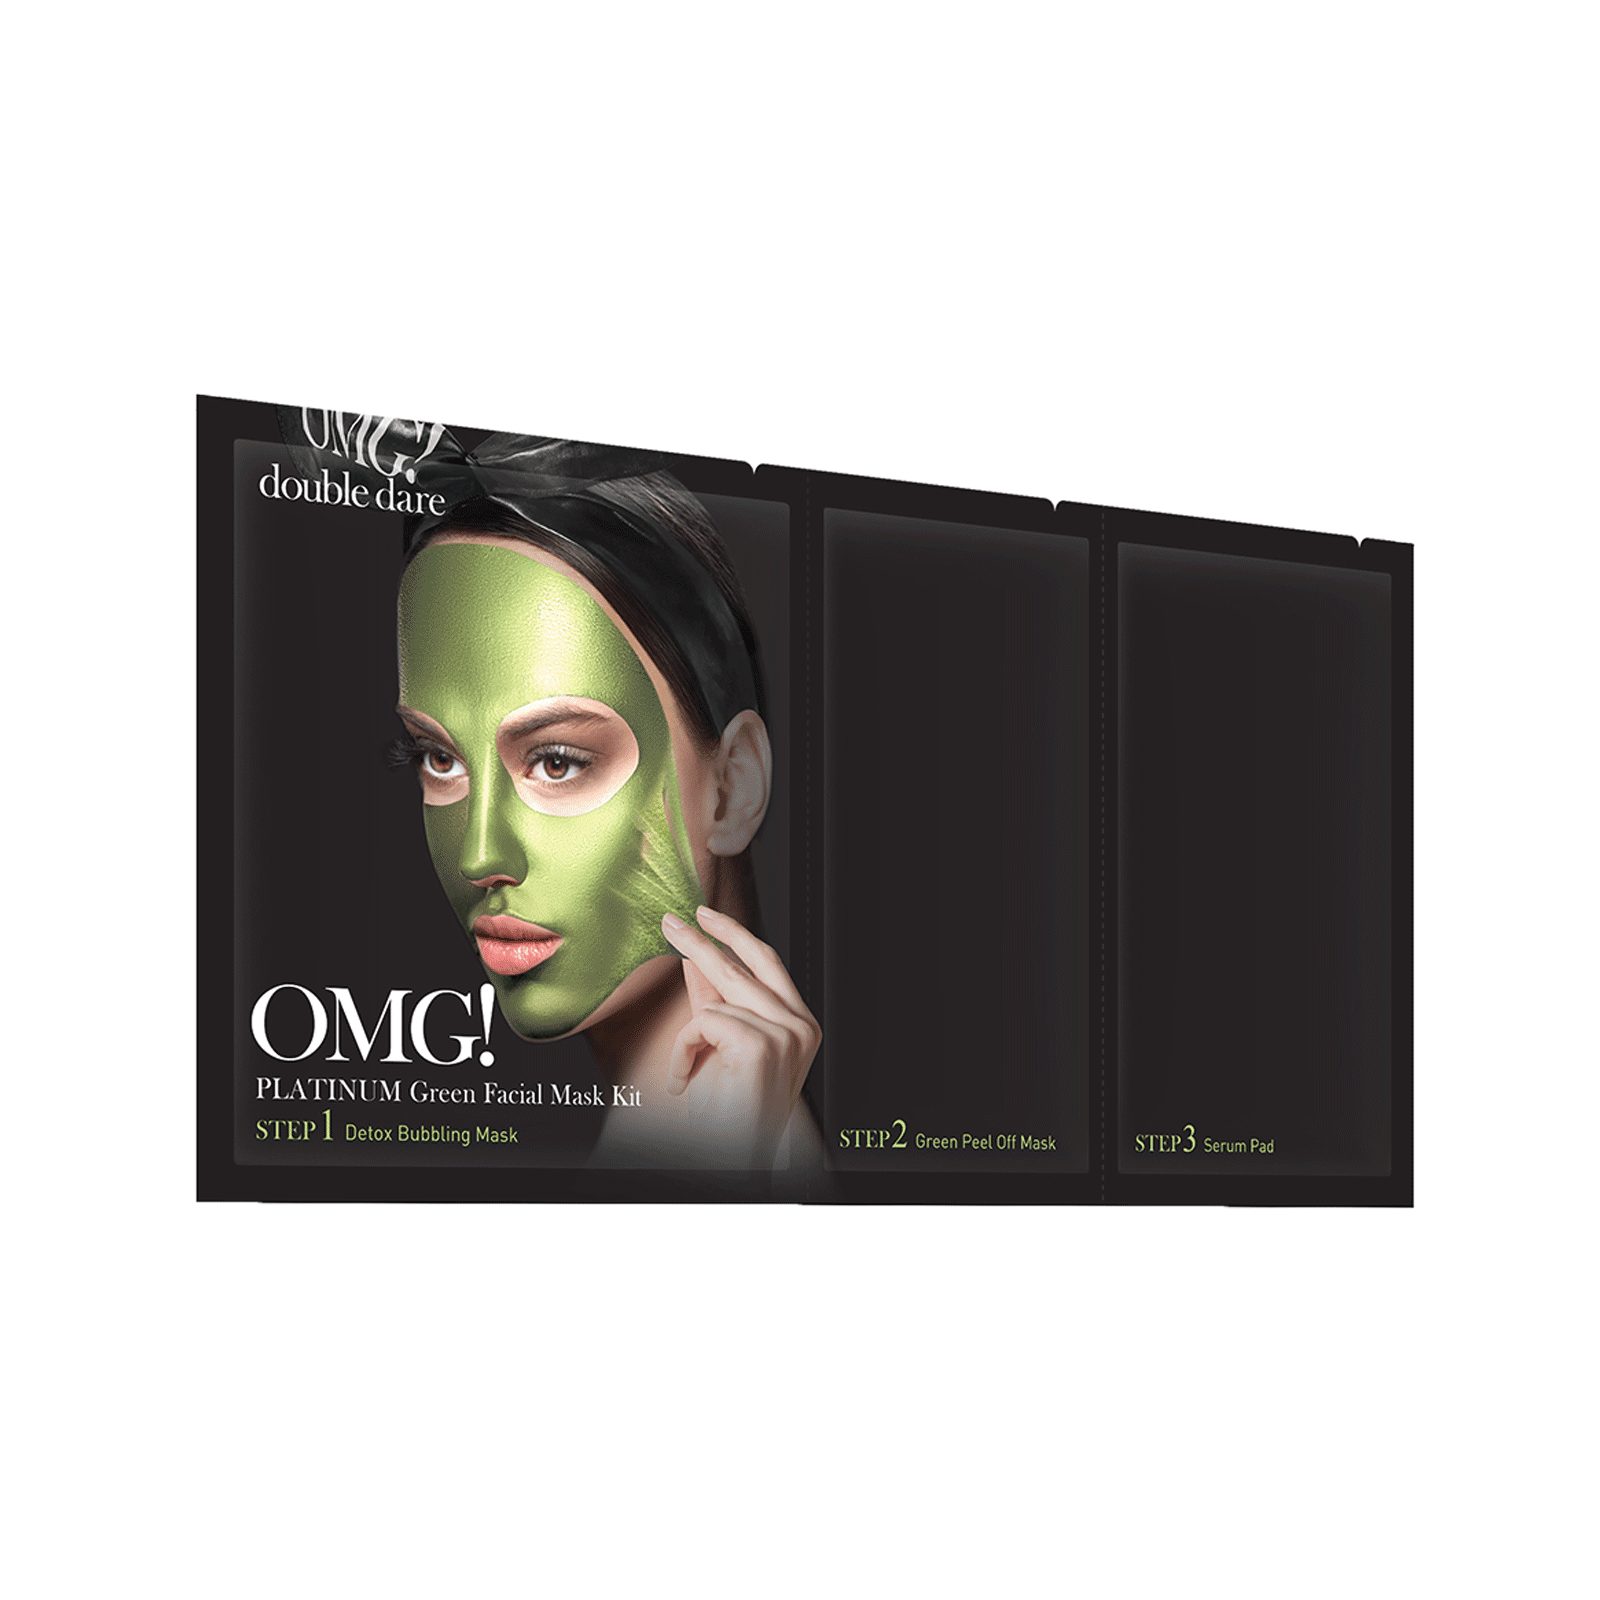 OMG! Platinum Green Face Mask